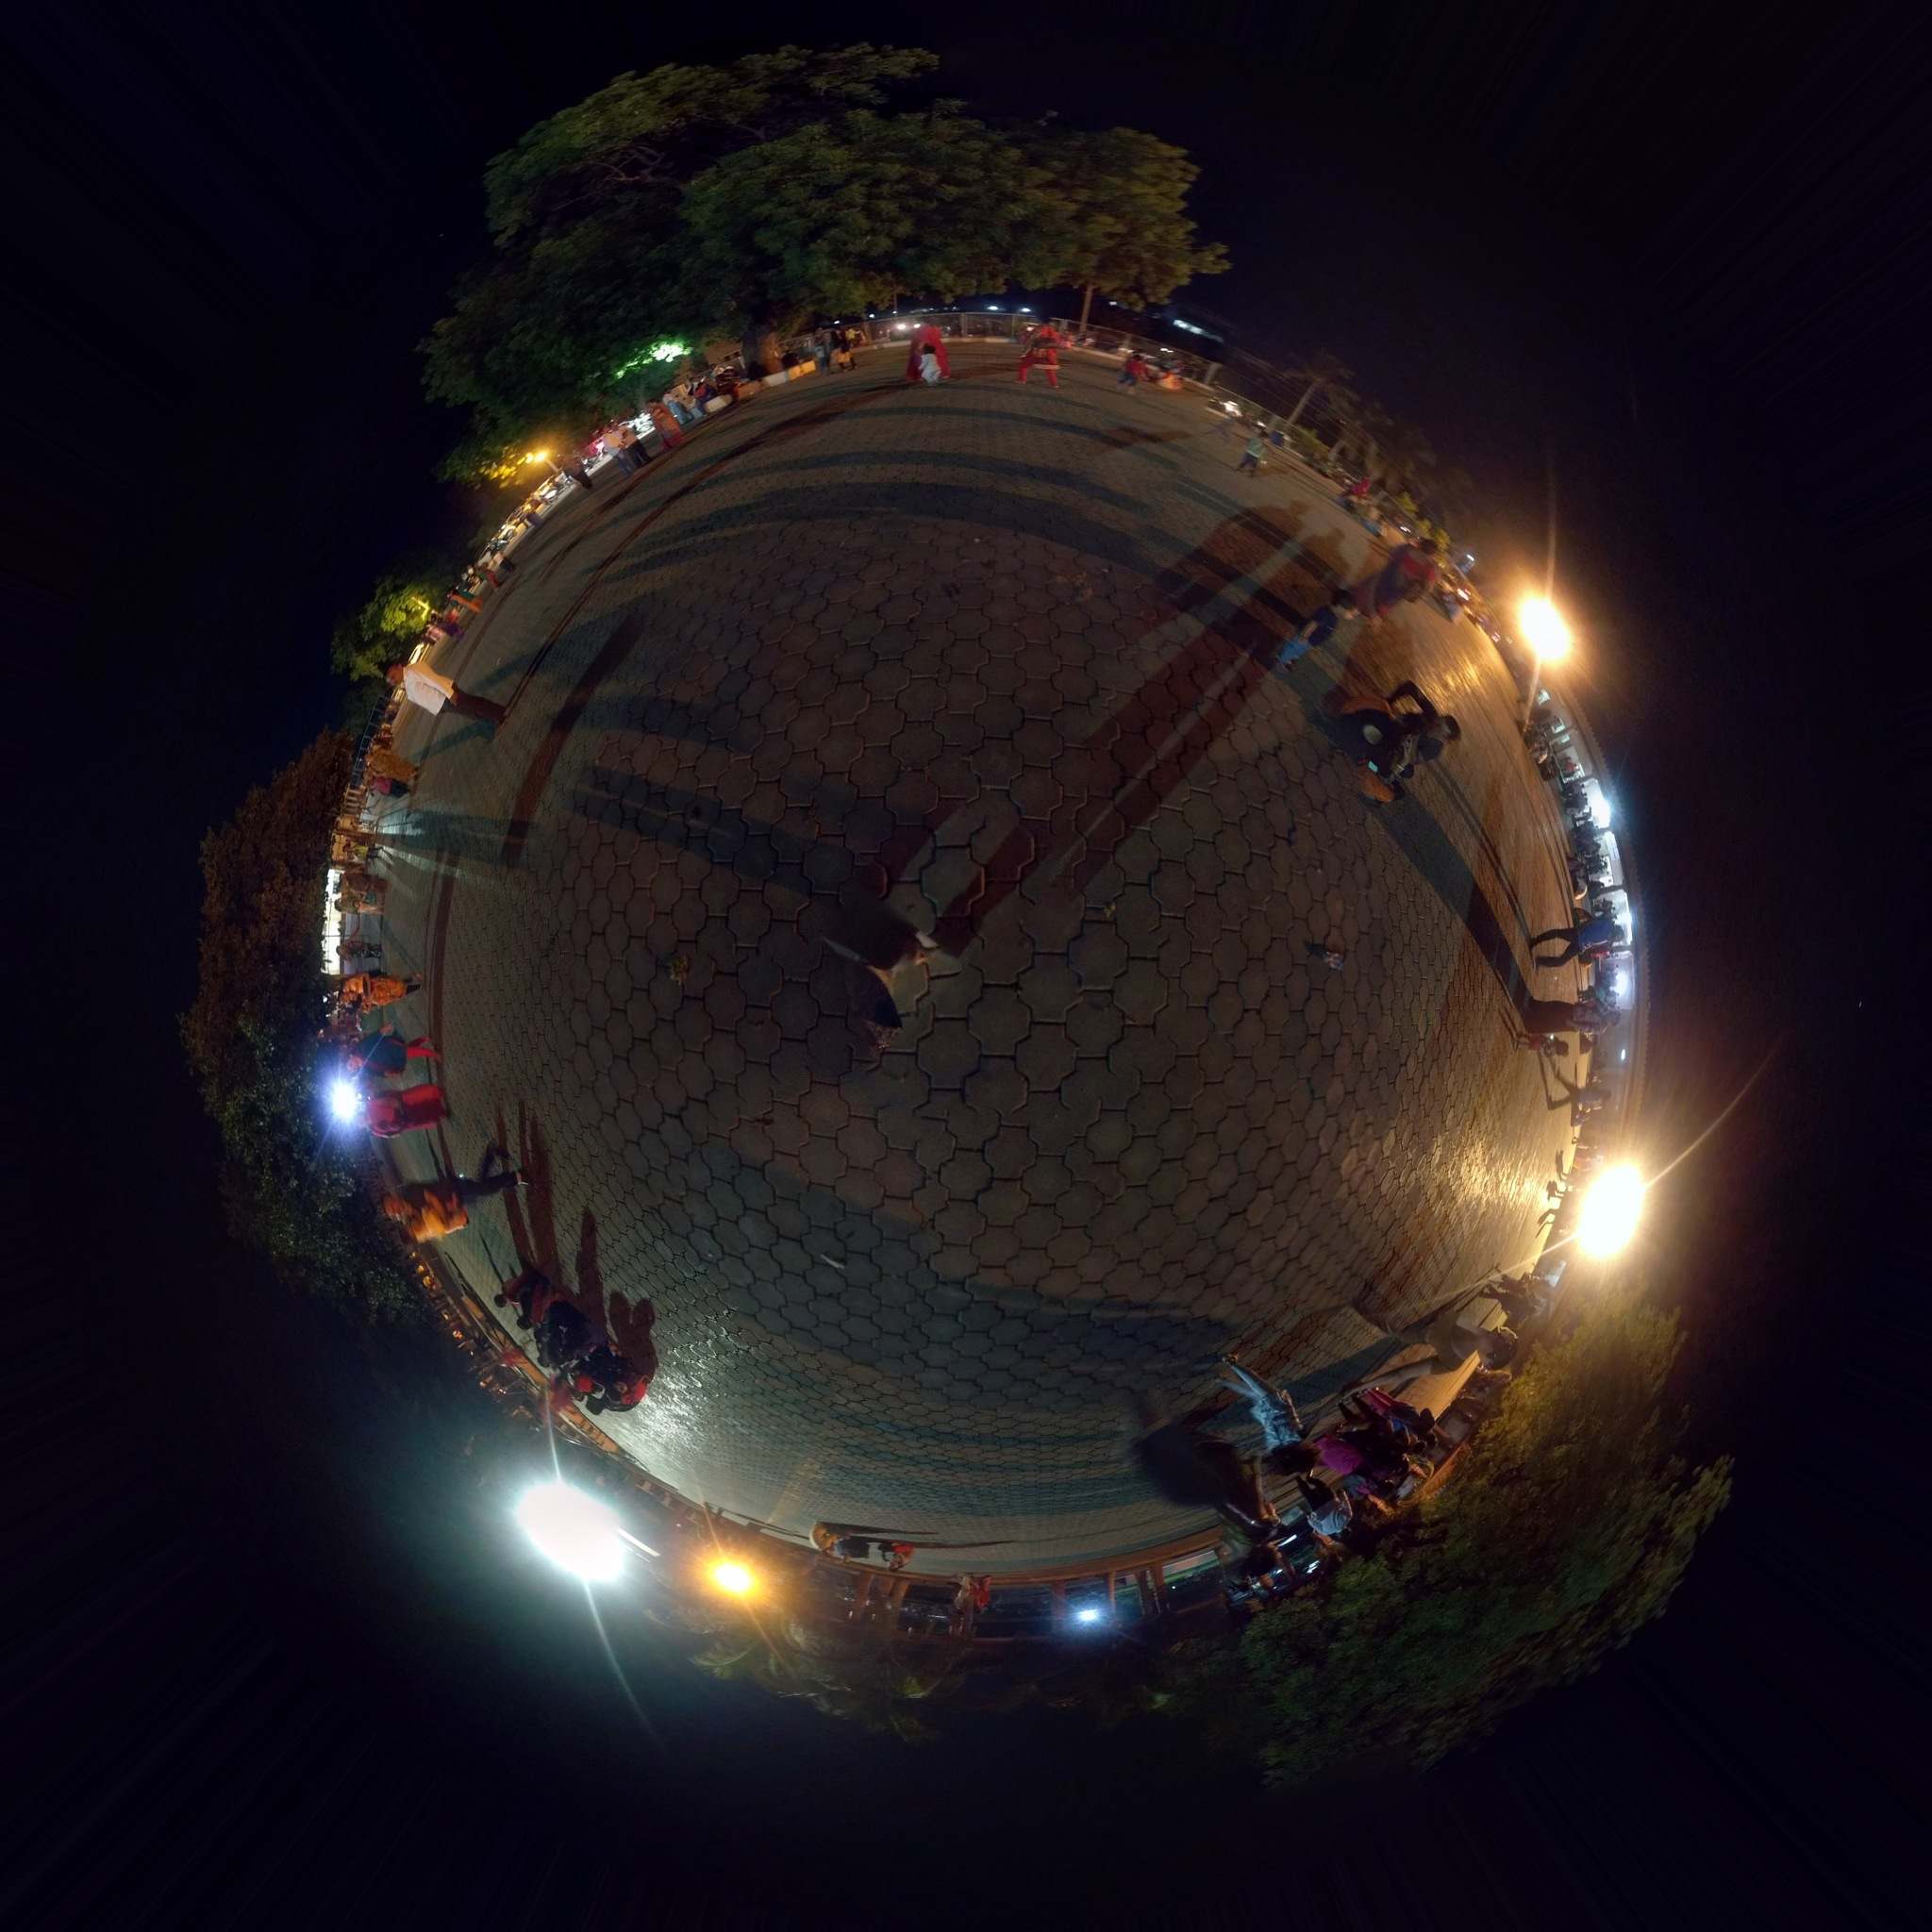 Tiny planet view by Meet Shah